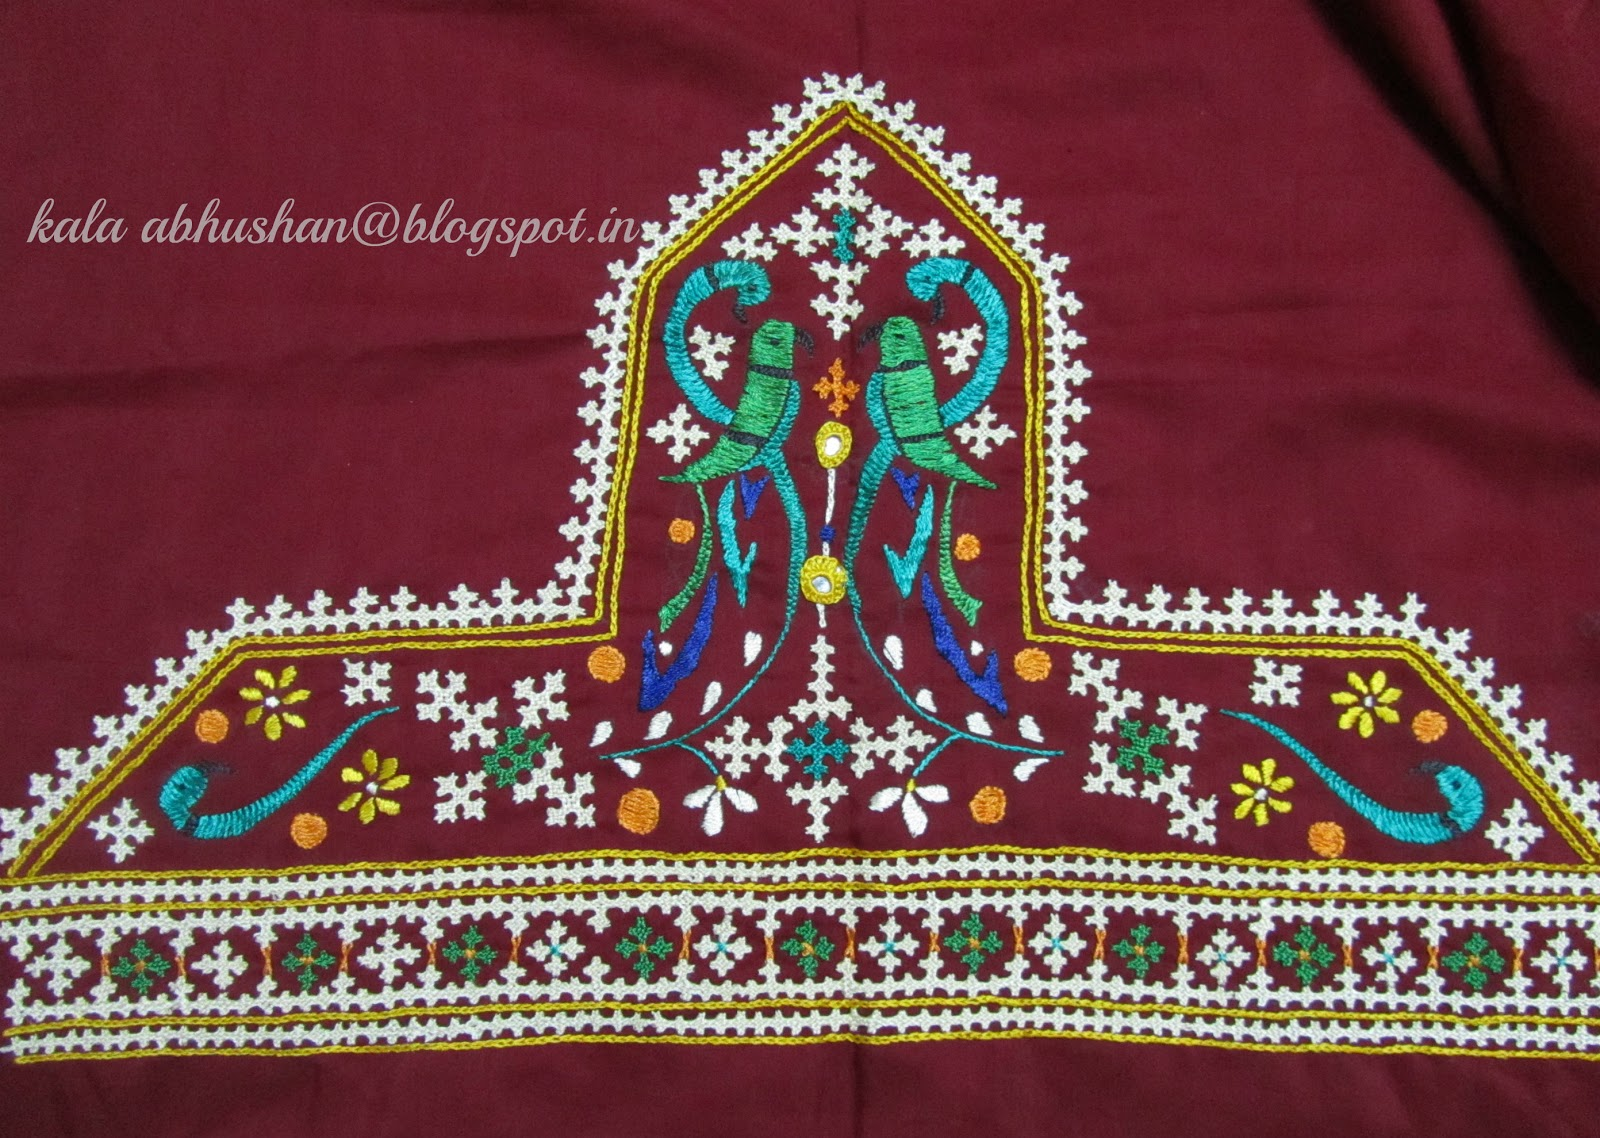 Art In Beads And Threads And More............. The Beauty Of Indian Embroidery - Kutchwork!